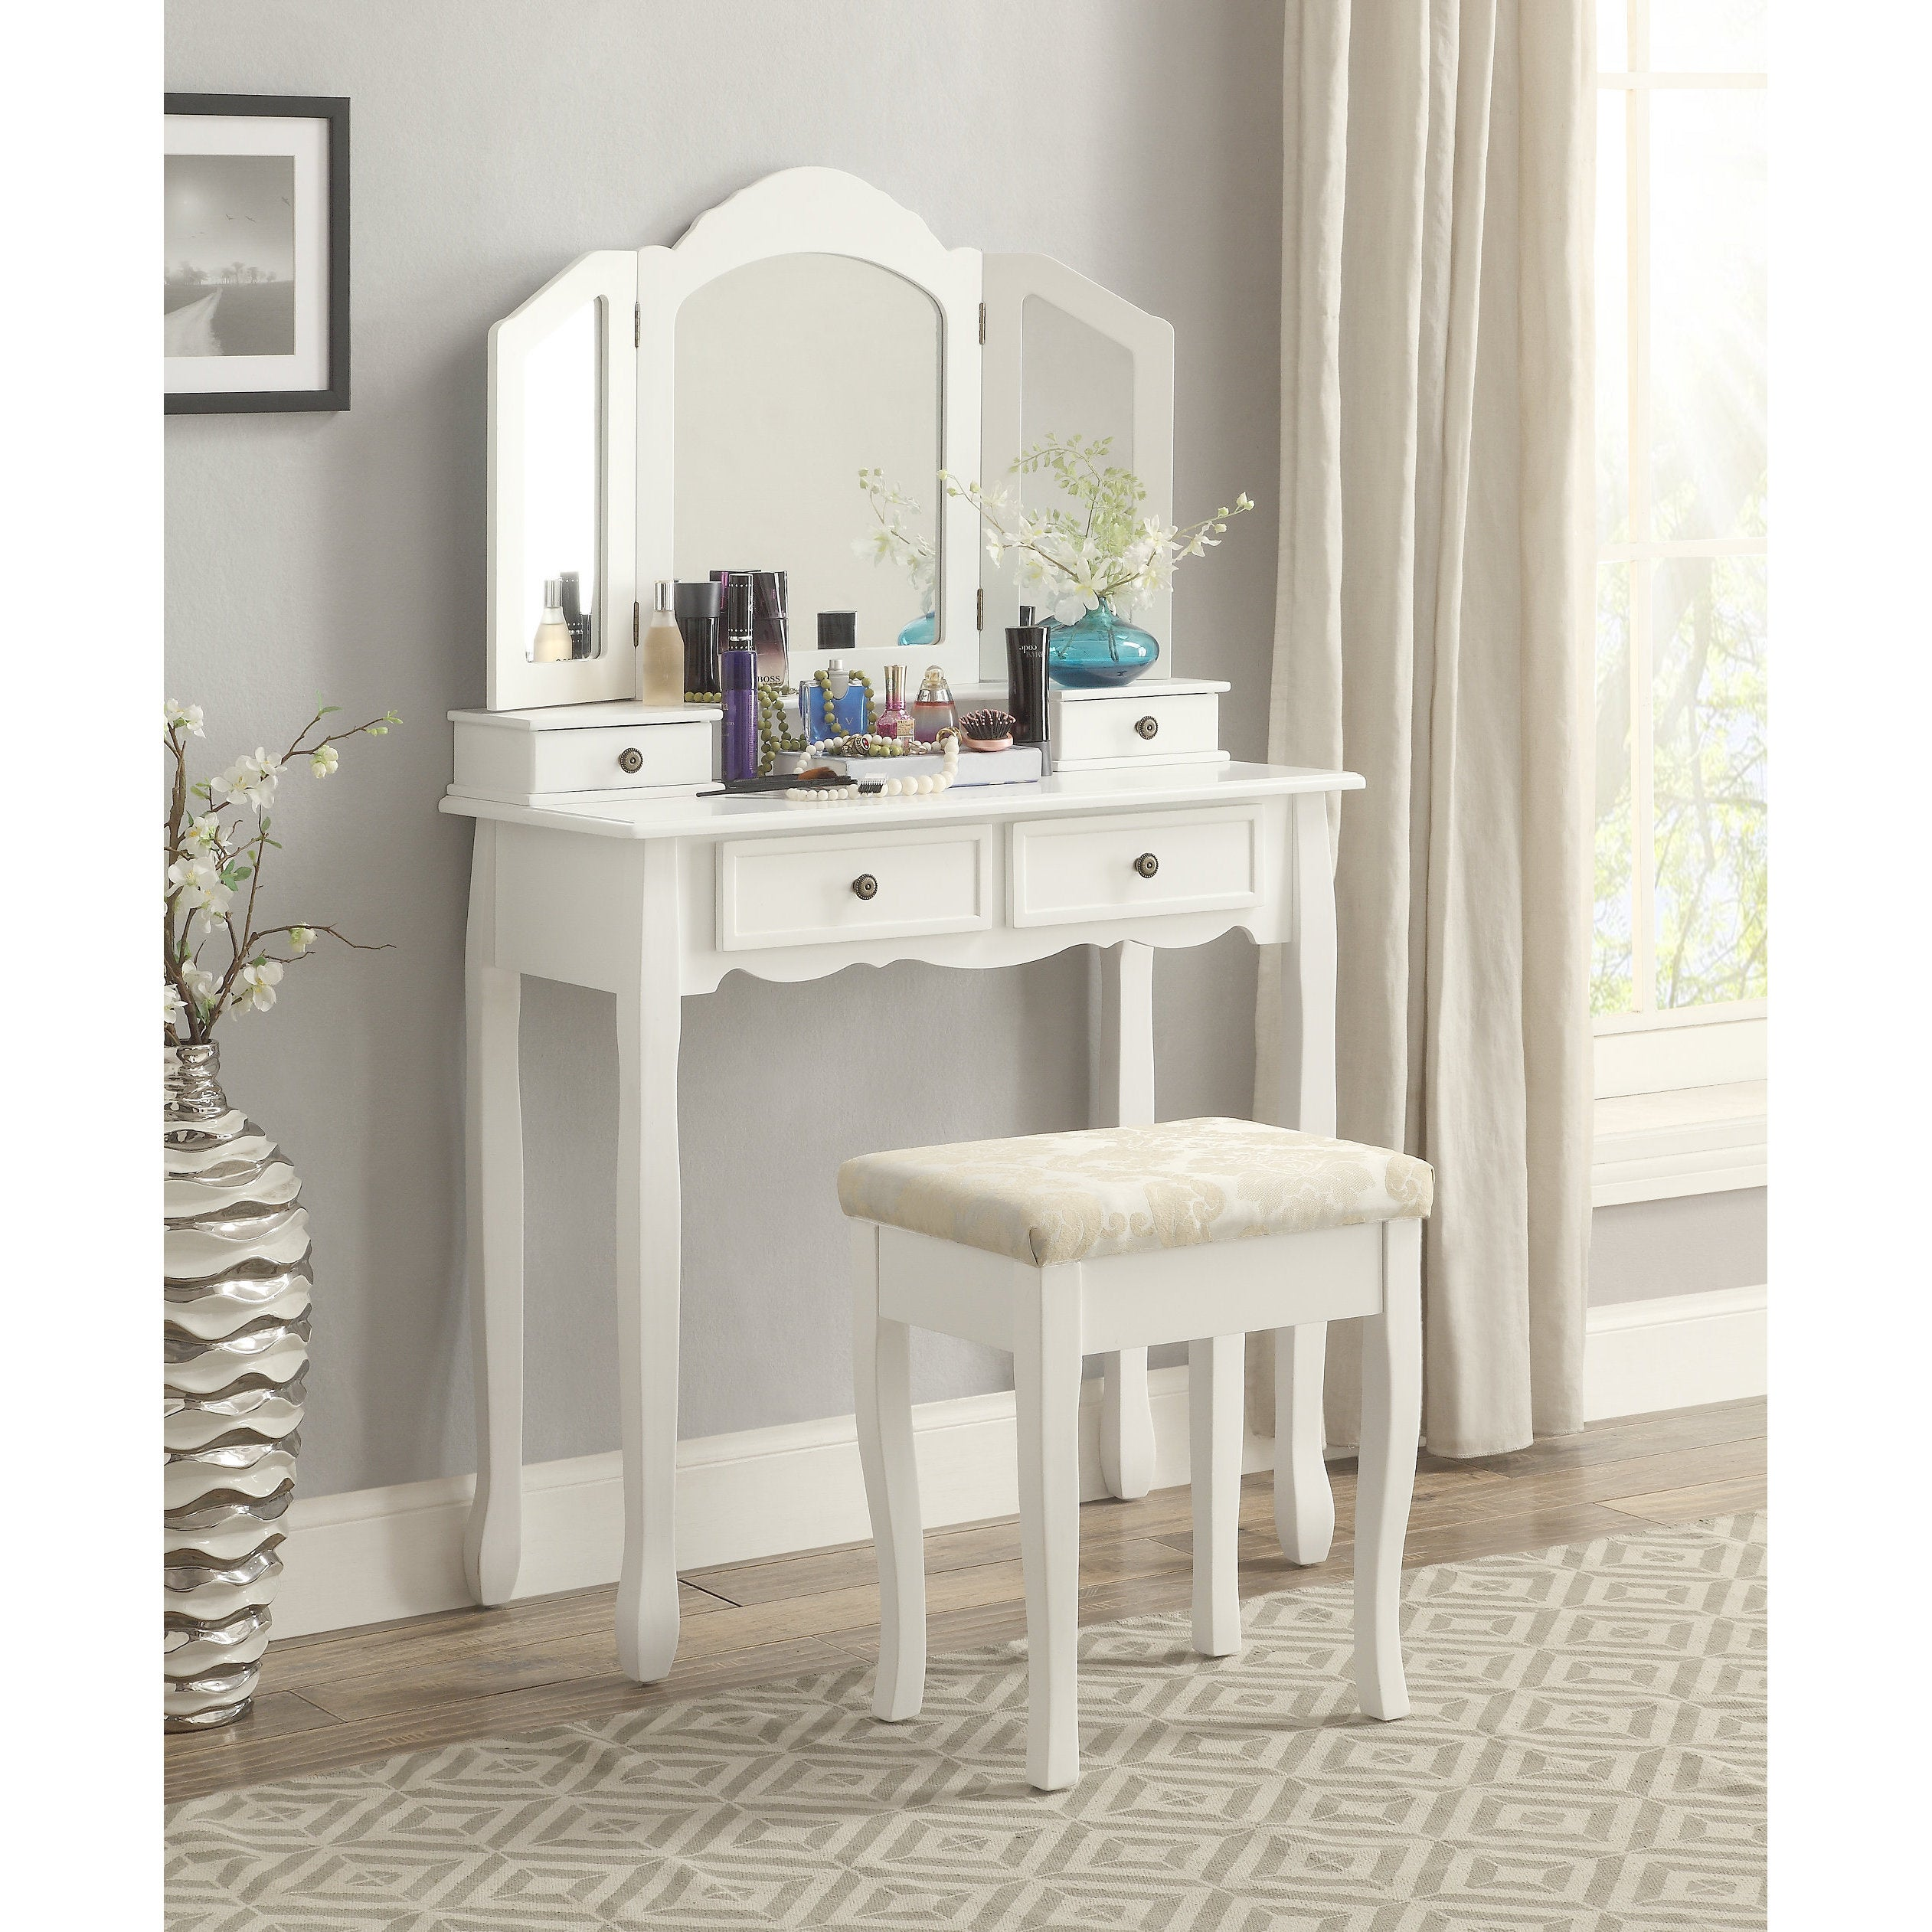 Clay Alder Home Clark White Wooden Vanity Make Up Table And Stool Set Free Shipping Today 20255188